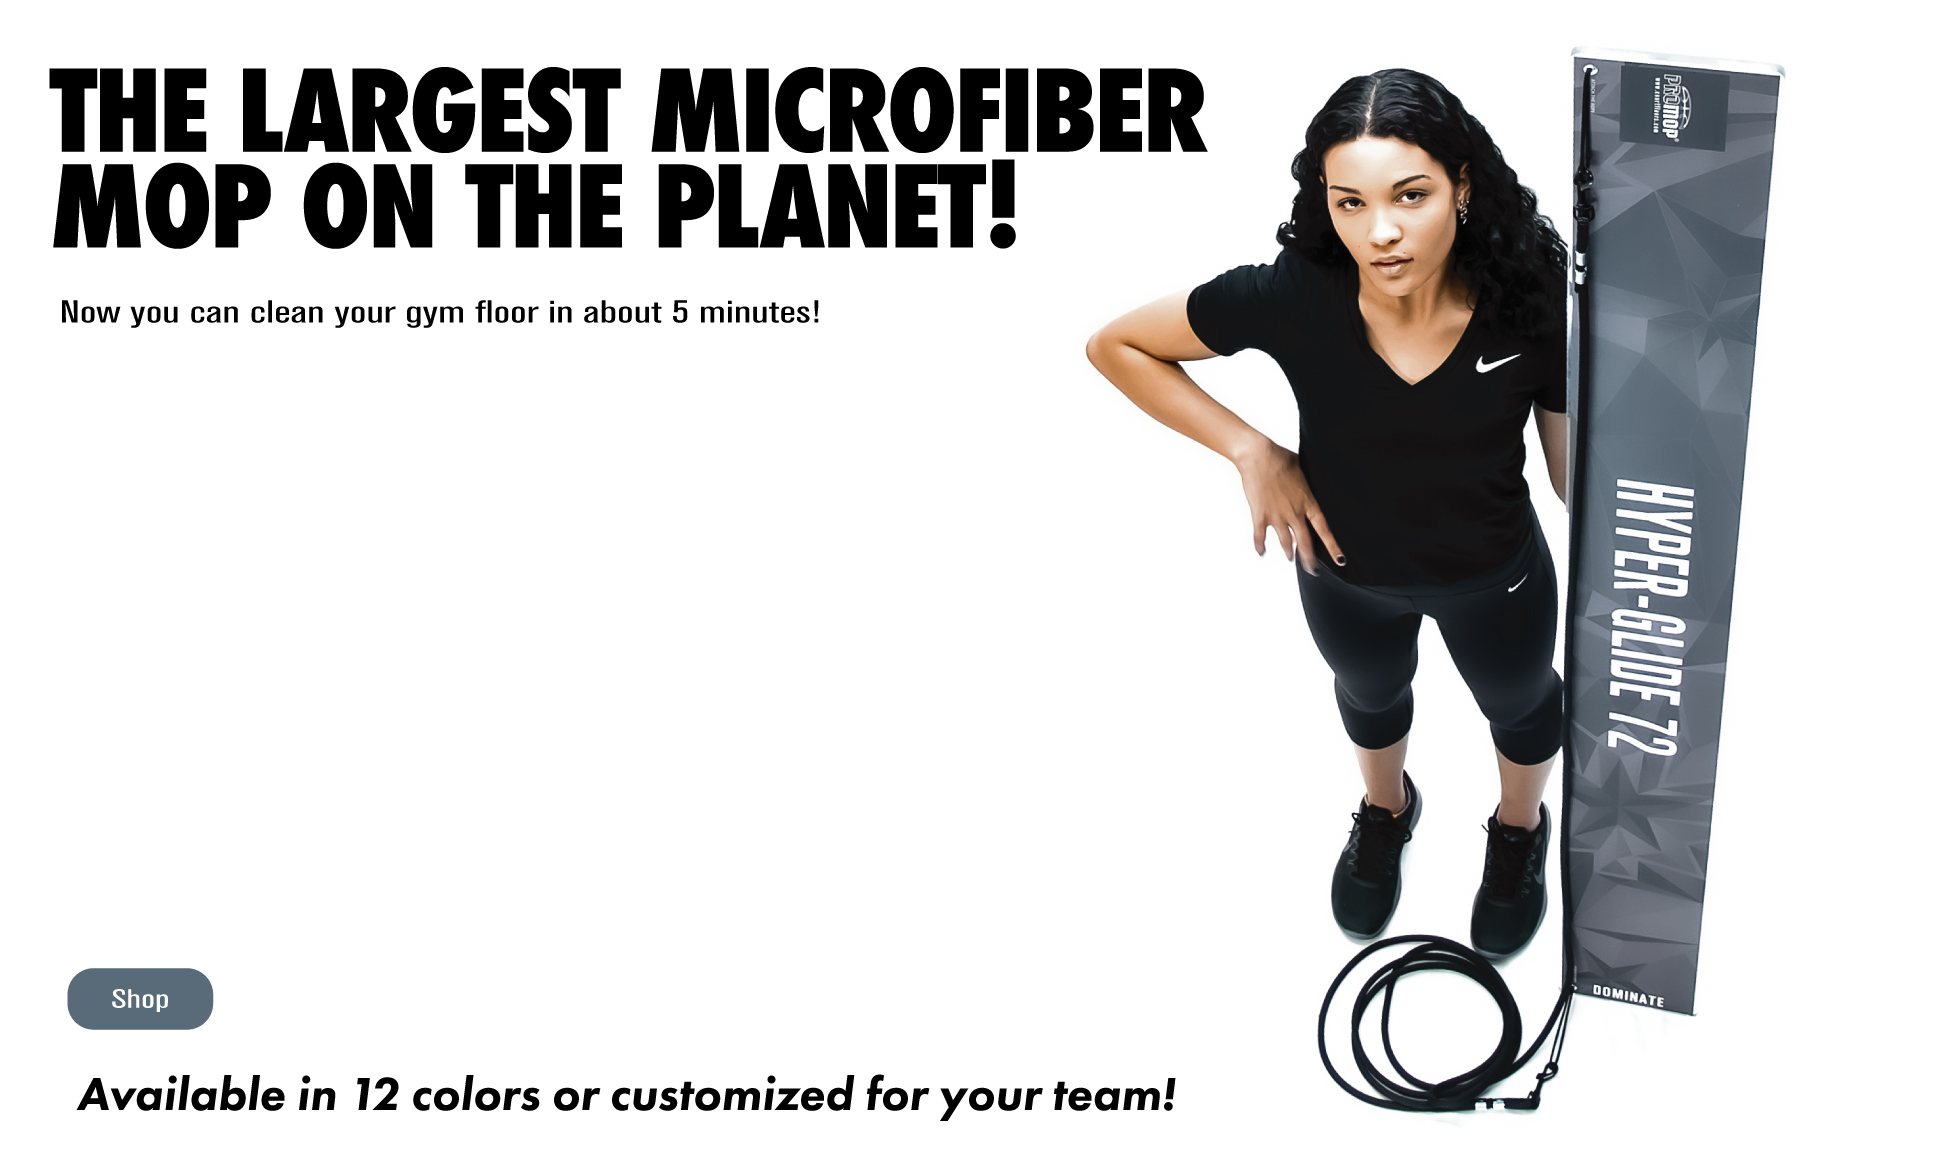 PROMOP HYPER-GLIDE 72 - WORLDS LARGEST MICROFIBER MOP - PULL BEHIND FOR CLEANING LARGE HARDWOOD GYM FLOOR SURFACES.